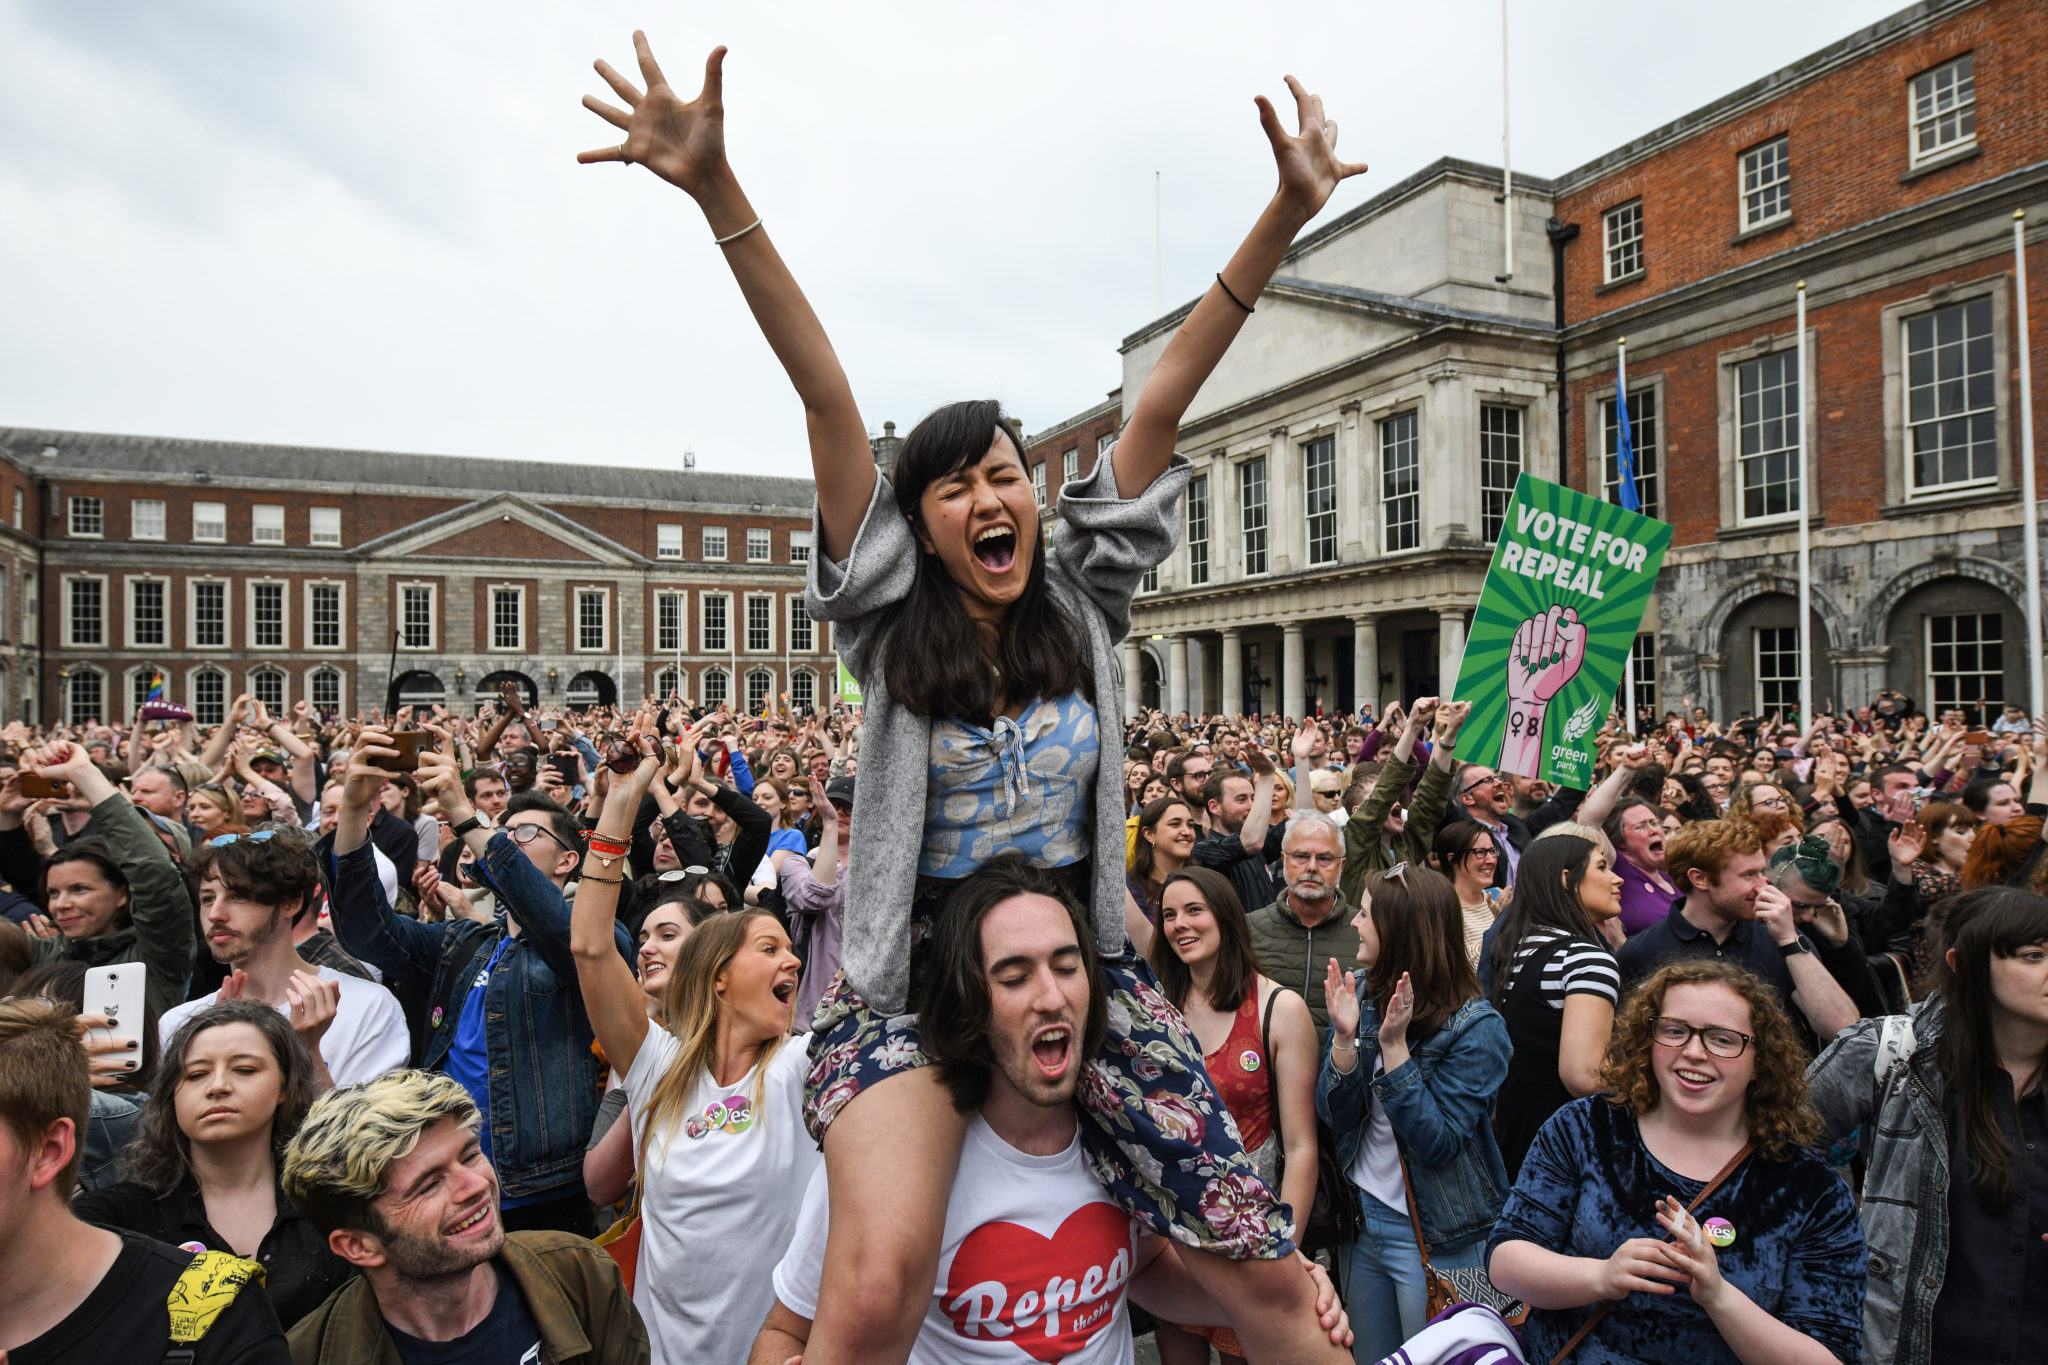 Ireland: History made as President Signs Abortion Bill into Law